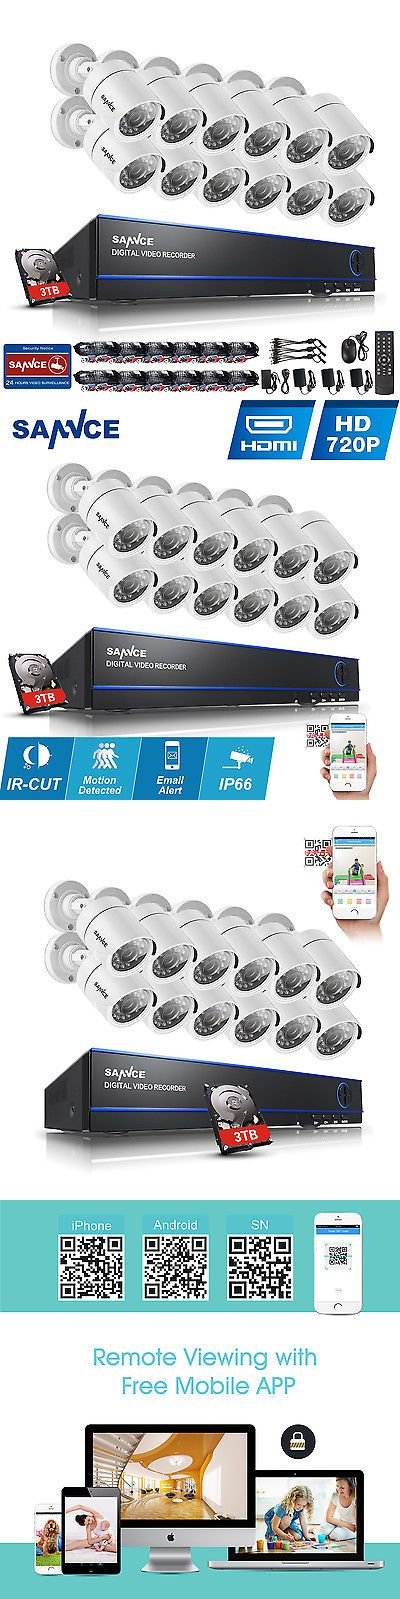 CCTV Systems 159909: Sannce 16Ch 4In1 Hd 1080N Hdmi Dvr Ir 1500Tvl Home Security Camera System 3T App -> BUY IT NOW ONLY: $429.98 on eBay!